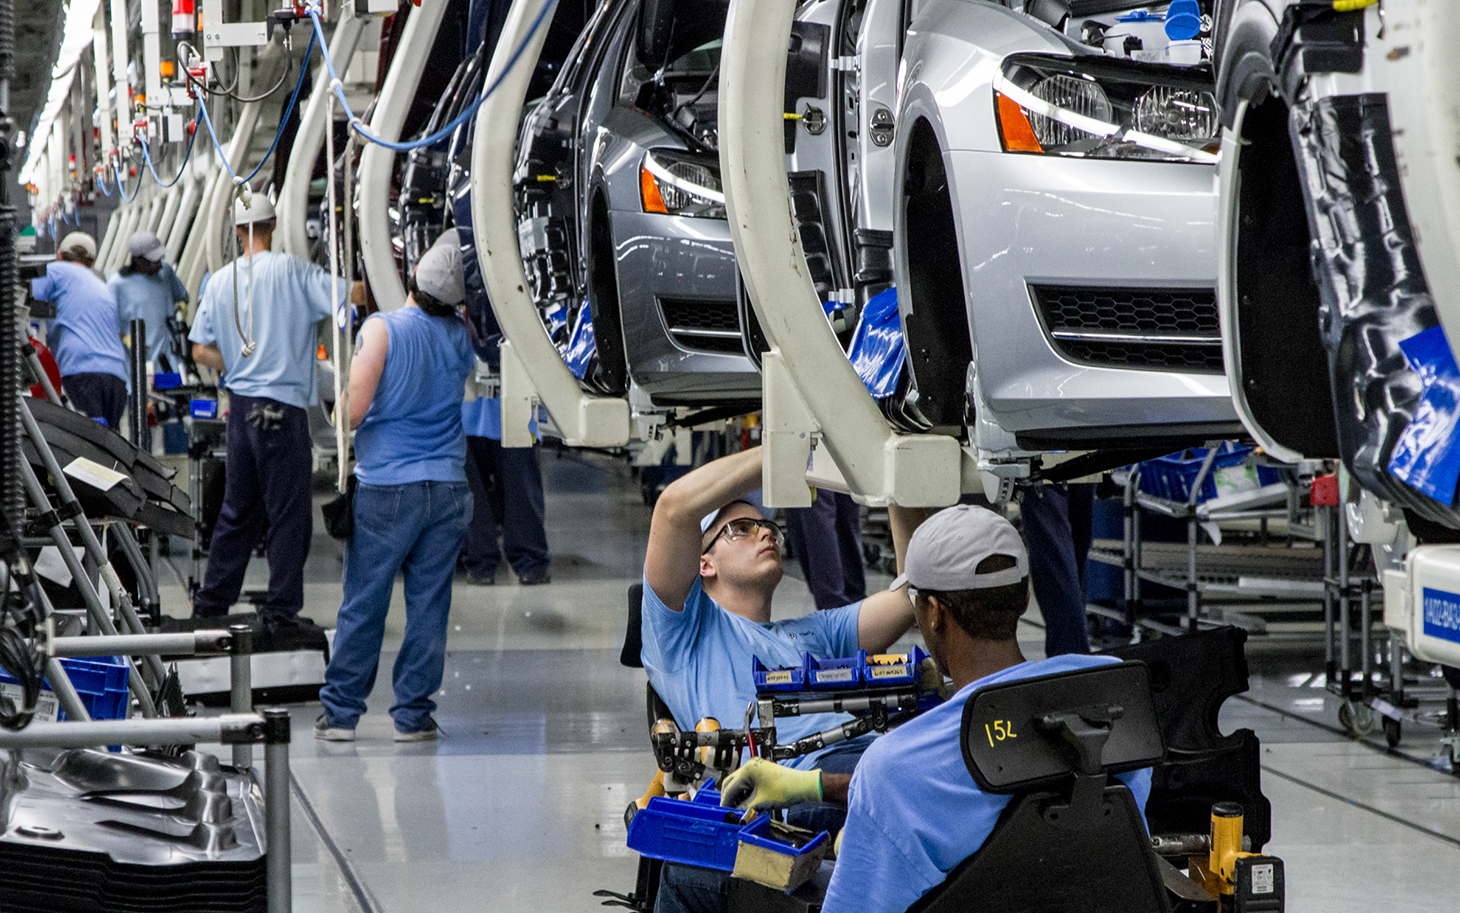 FILE - In this June 12, 2013, file photo, workers assemble Volkswagen Passat sedans at the German automaker's plant in Chattanooga, Tenn. Workers at the plant will decide in a three-day vote Wednesday, Feb. 12, 2014, whether they want to be represented by the United Auto Workers union. (AP Photo/Erik Schelzig, file)